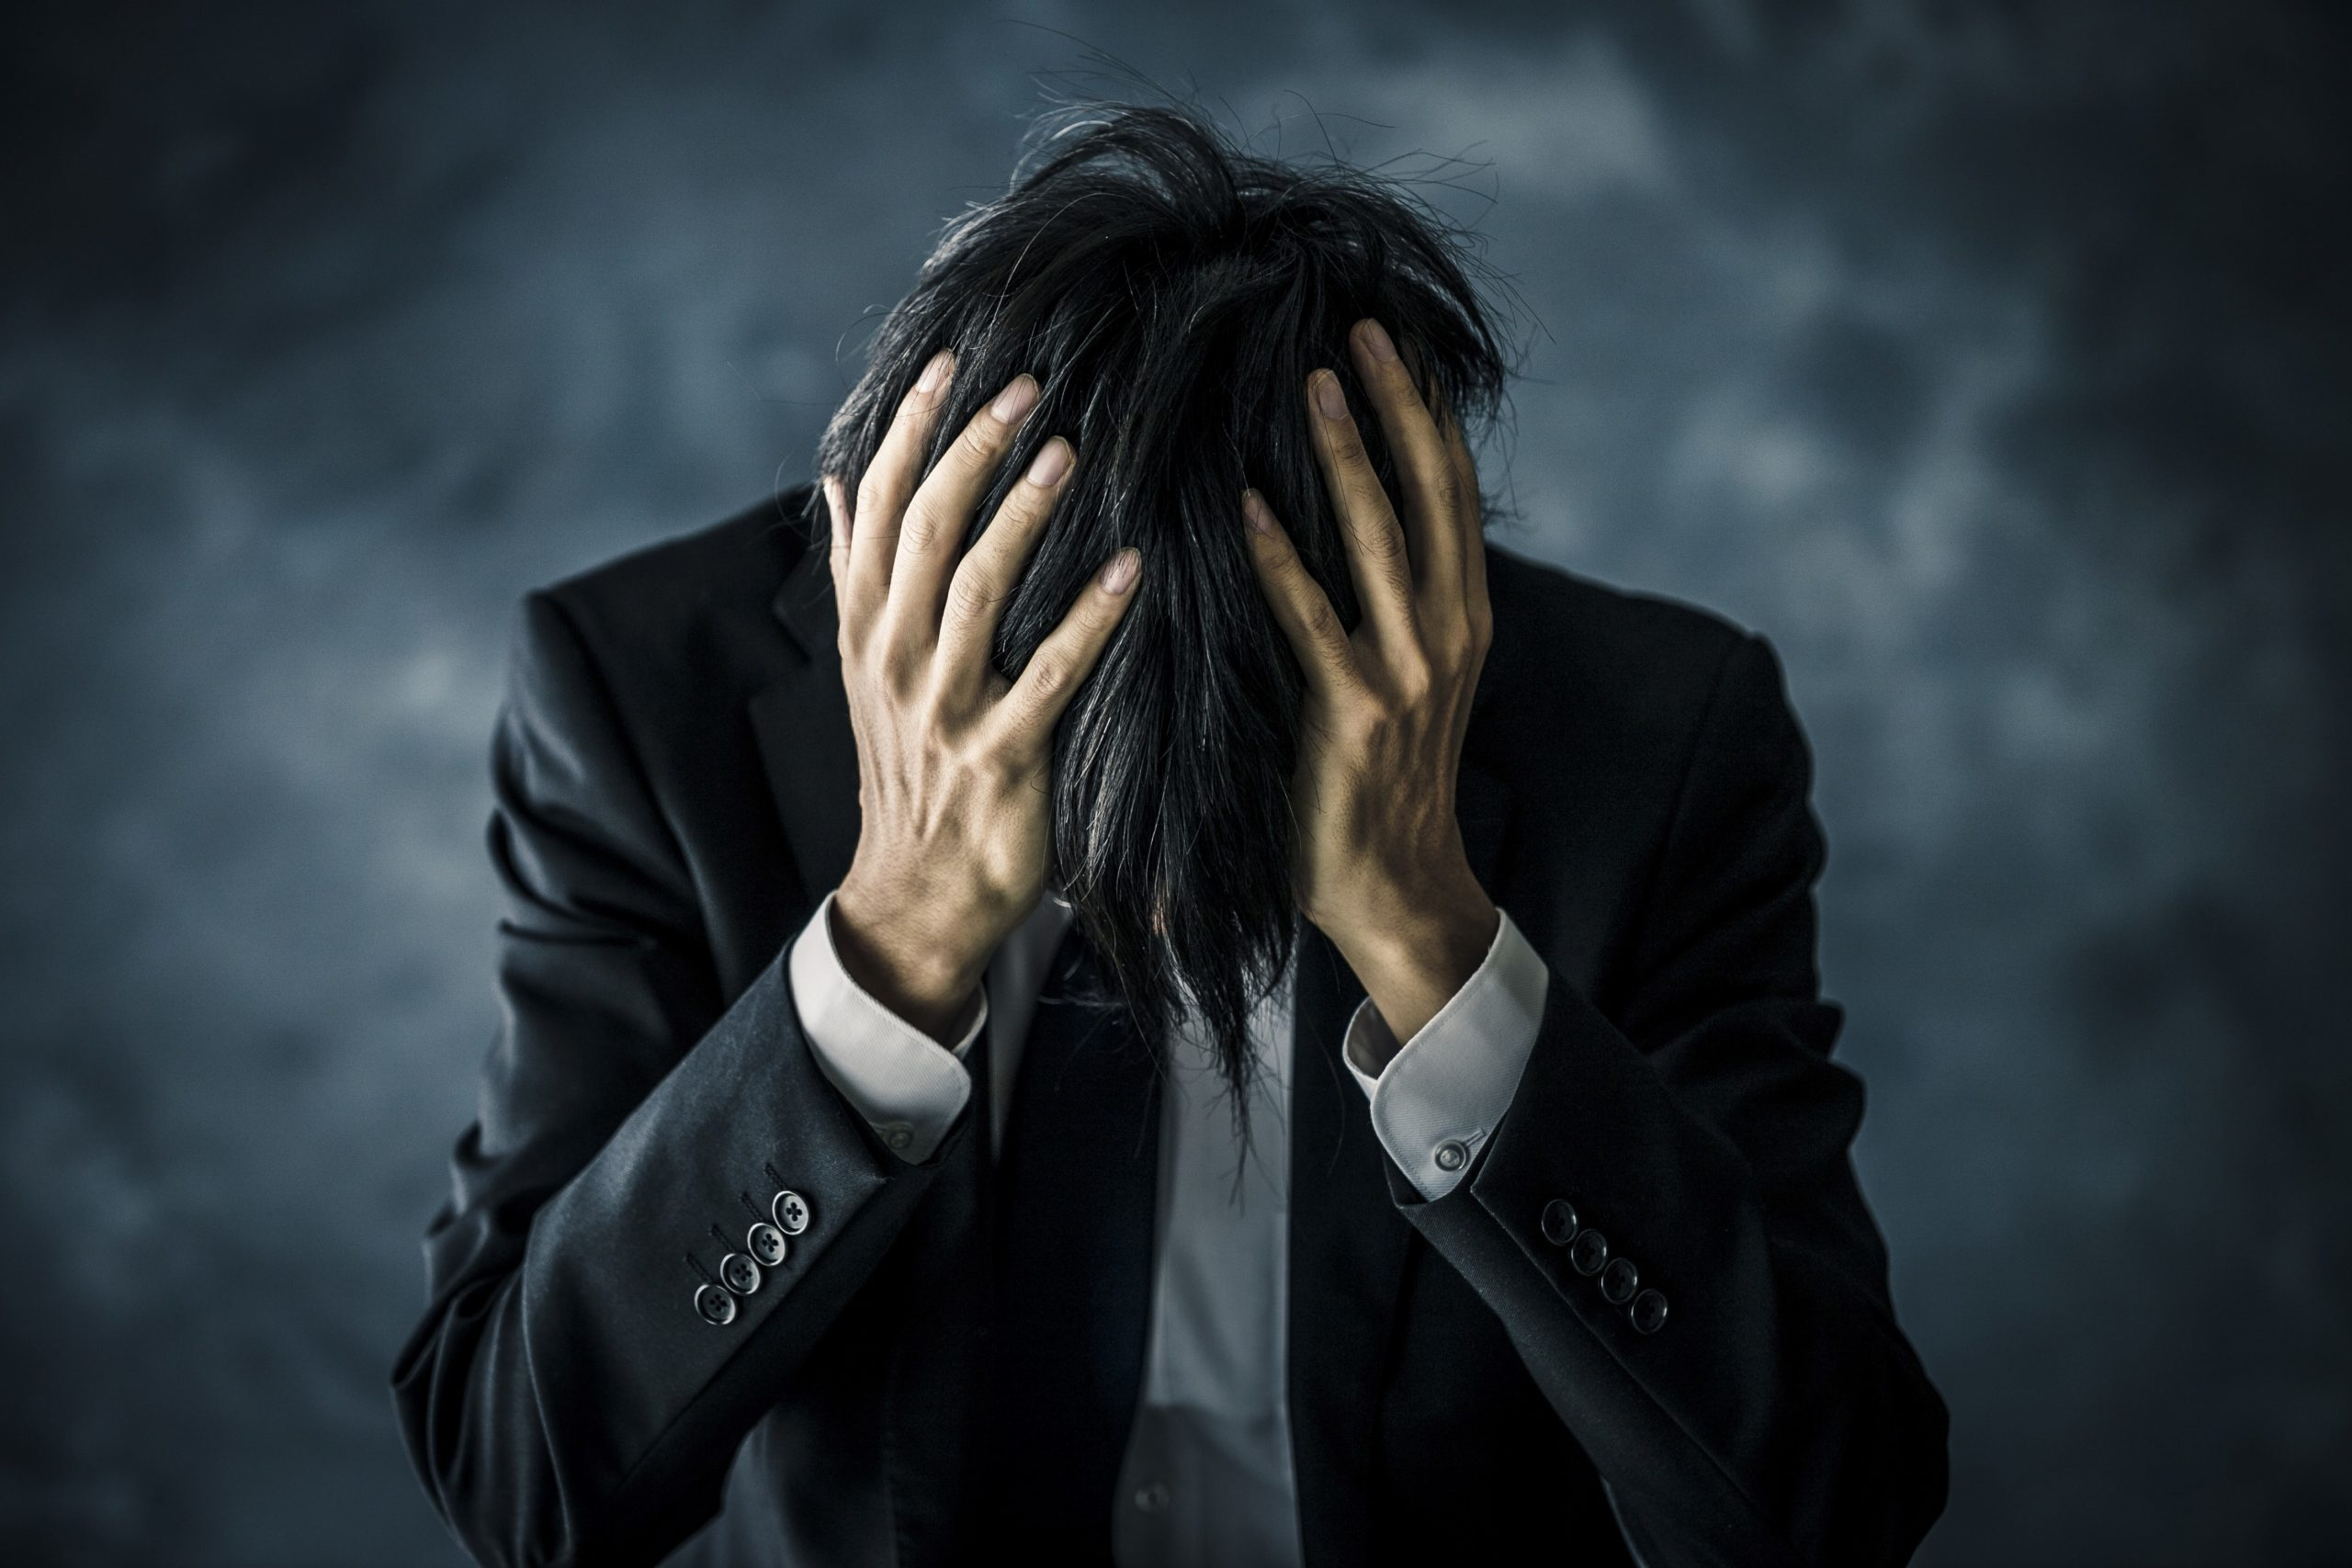 Image of Man Grabing his head with both hands